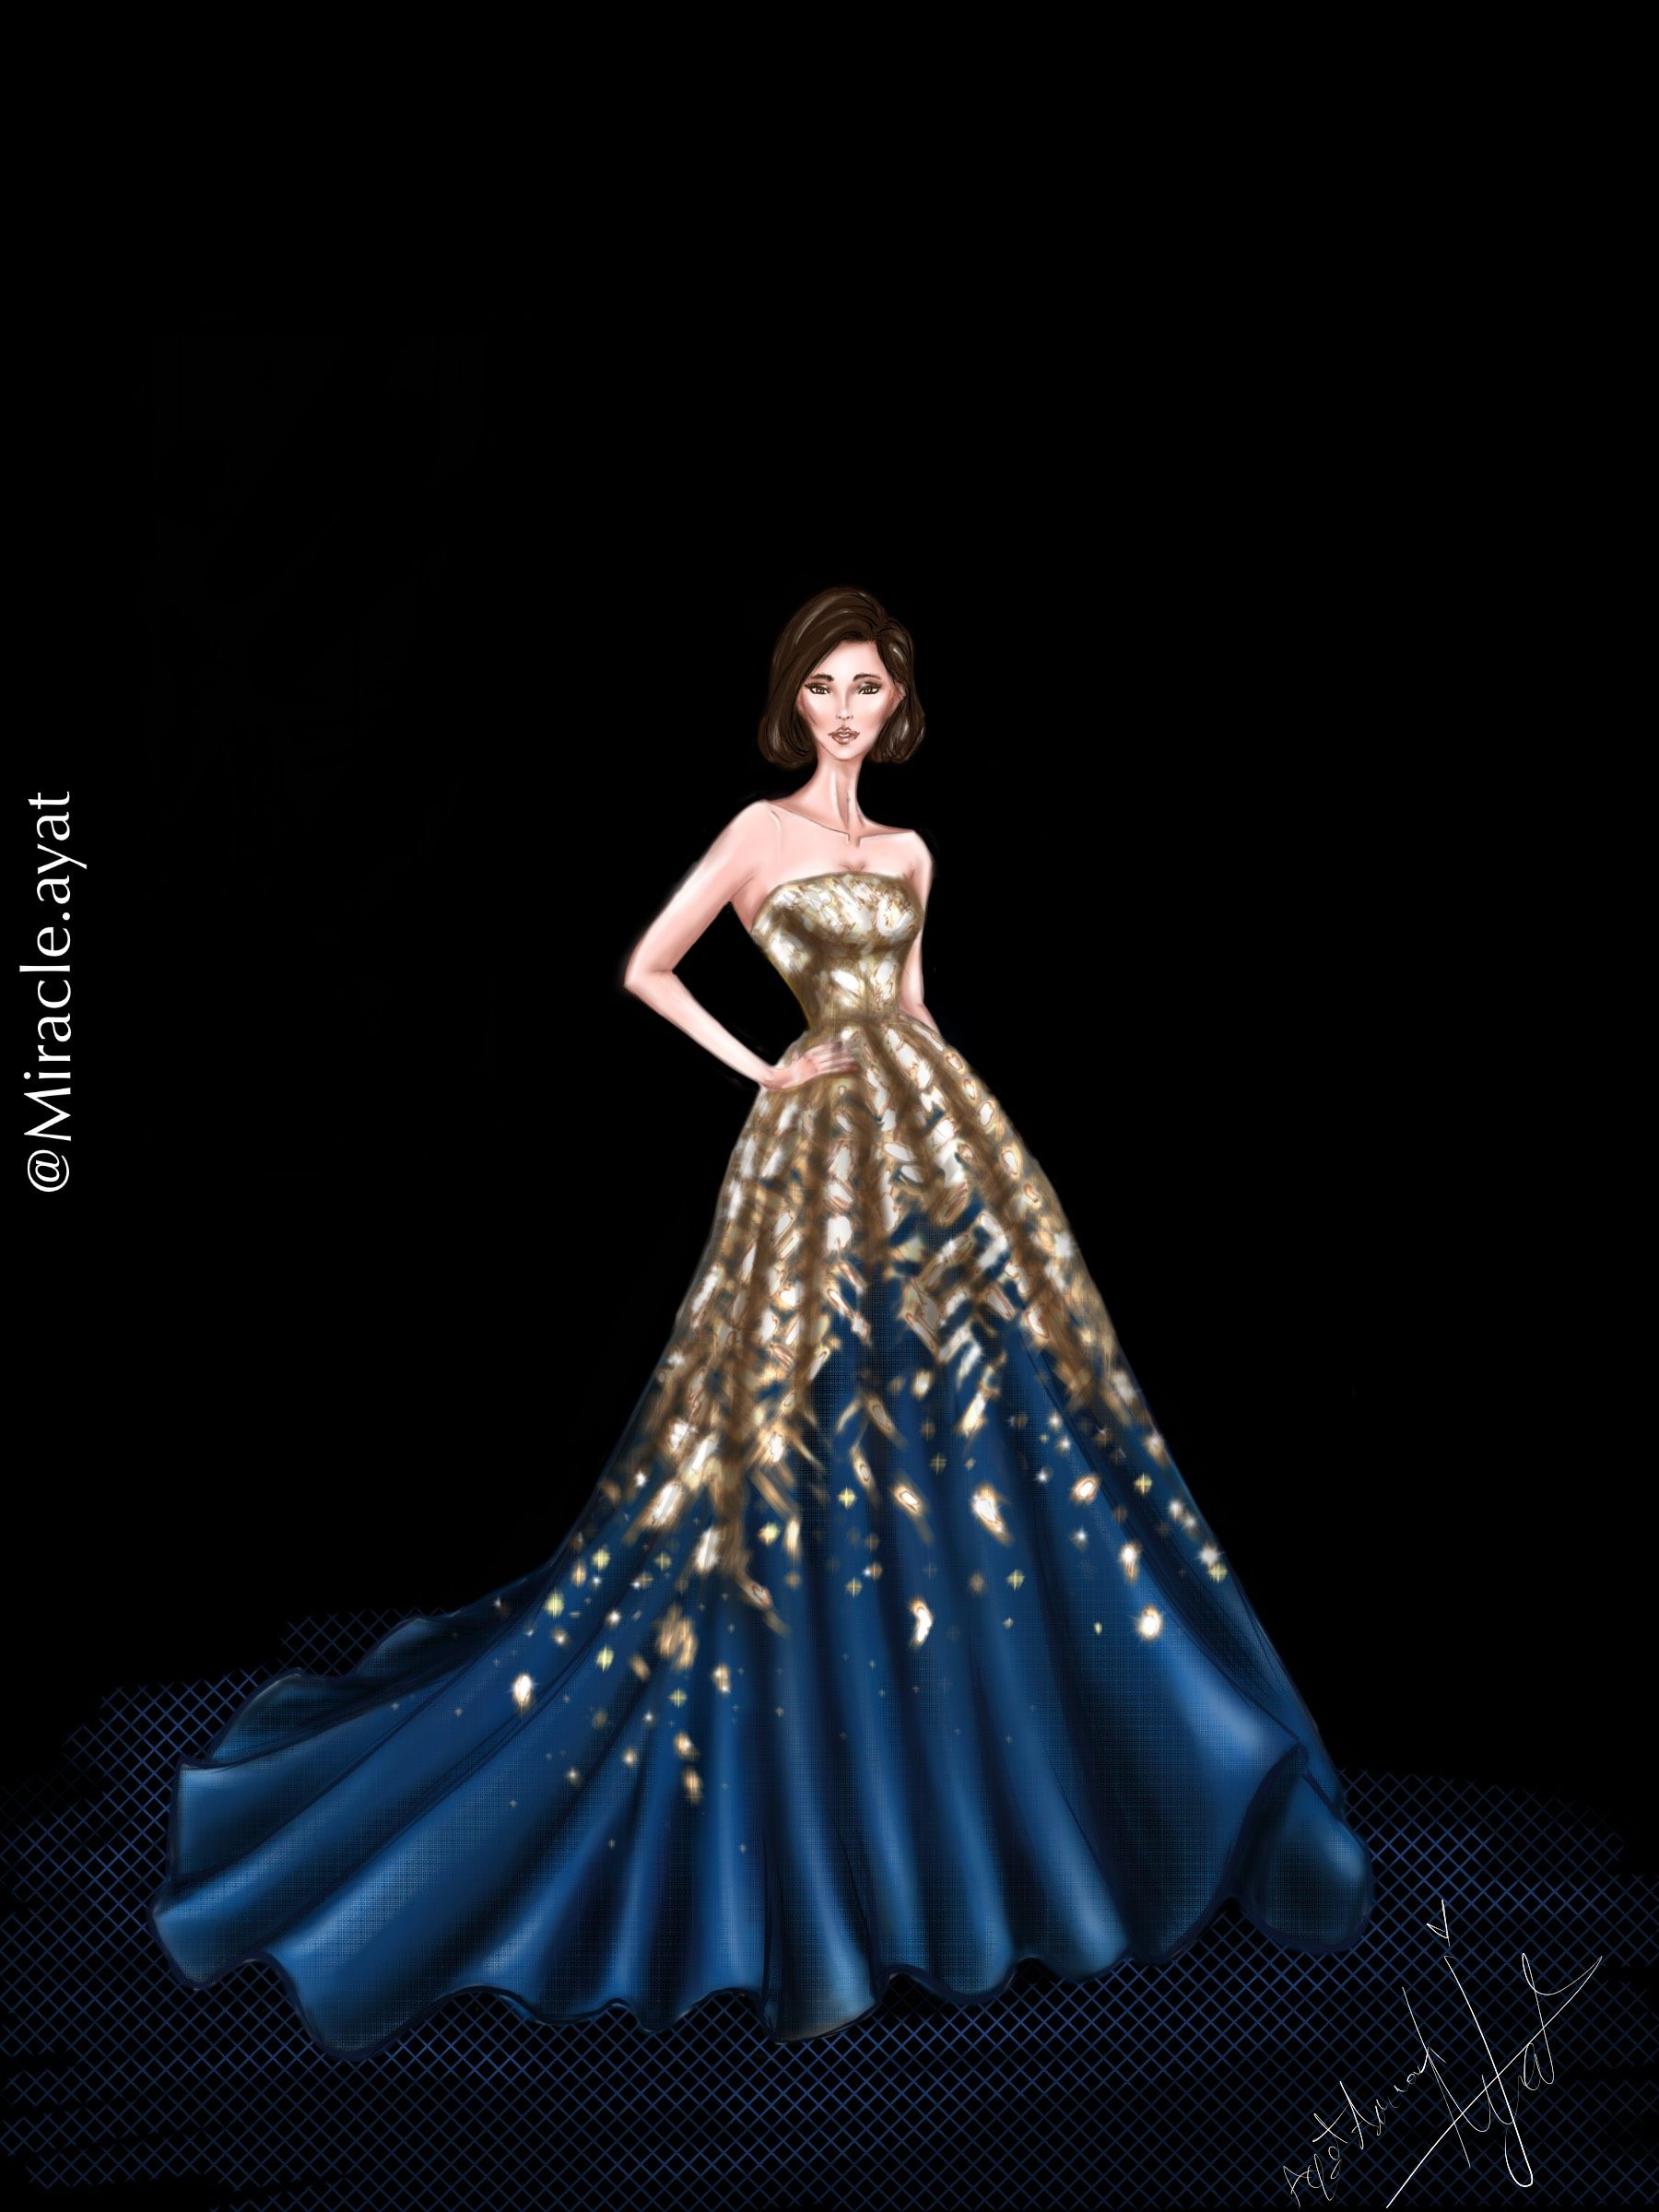 Rami Al Ali Haute Couture Aw18 19 Collection Illustrated By Ayat Strapless Dress Formal Fashion Illustration Fashion